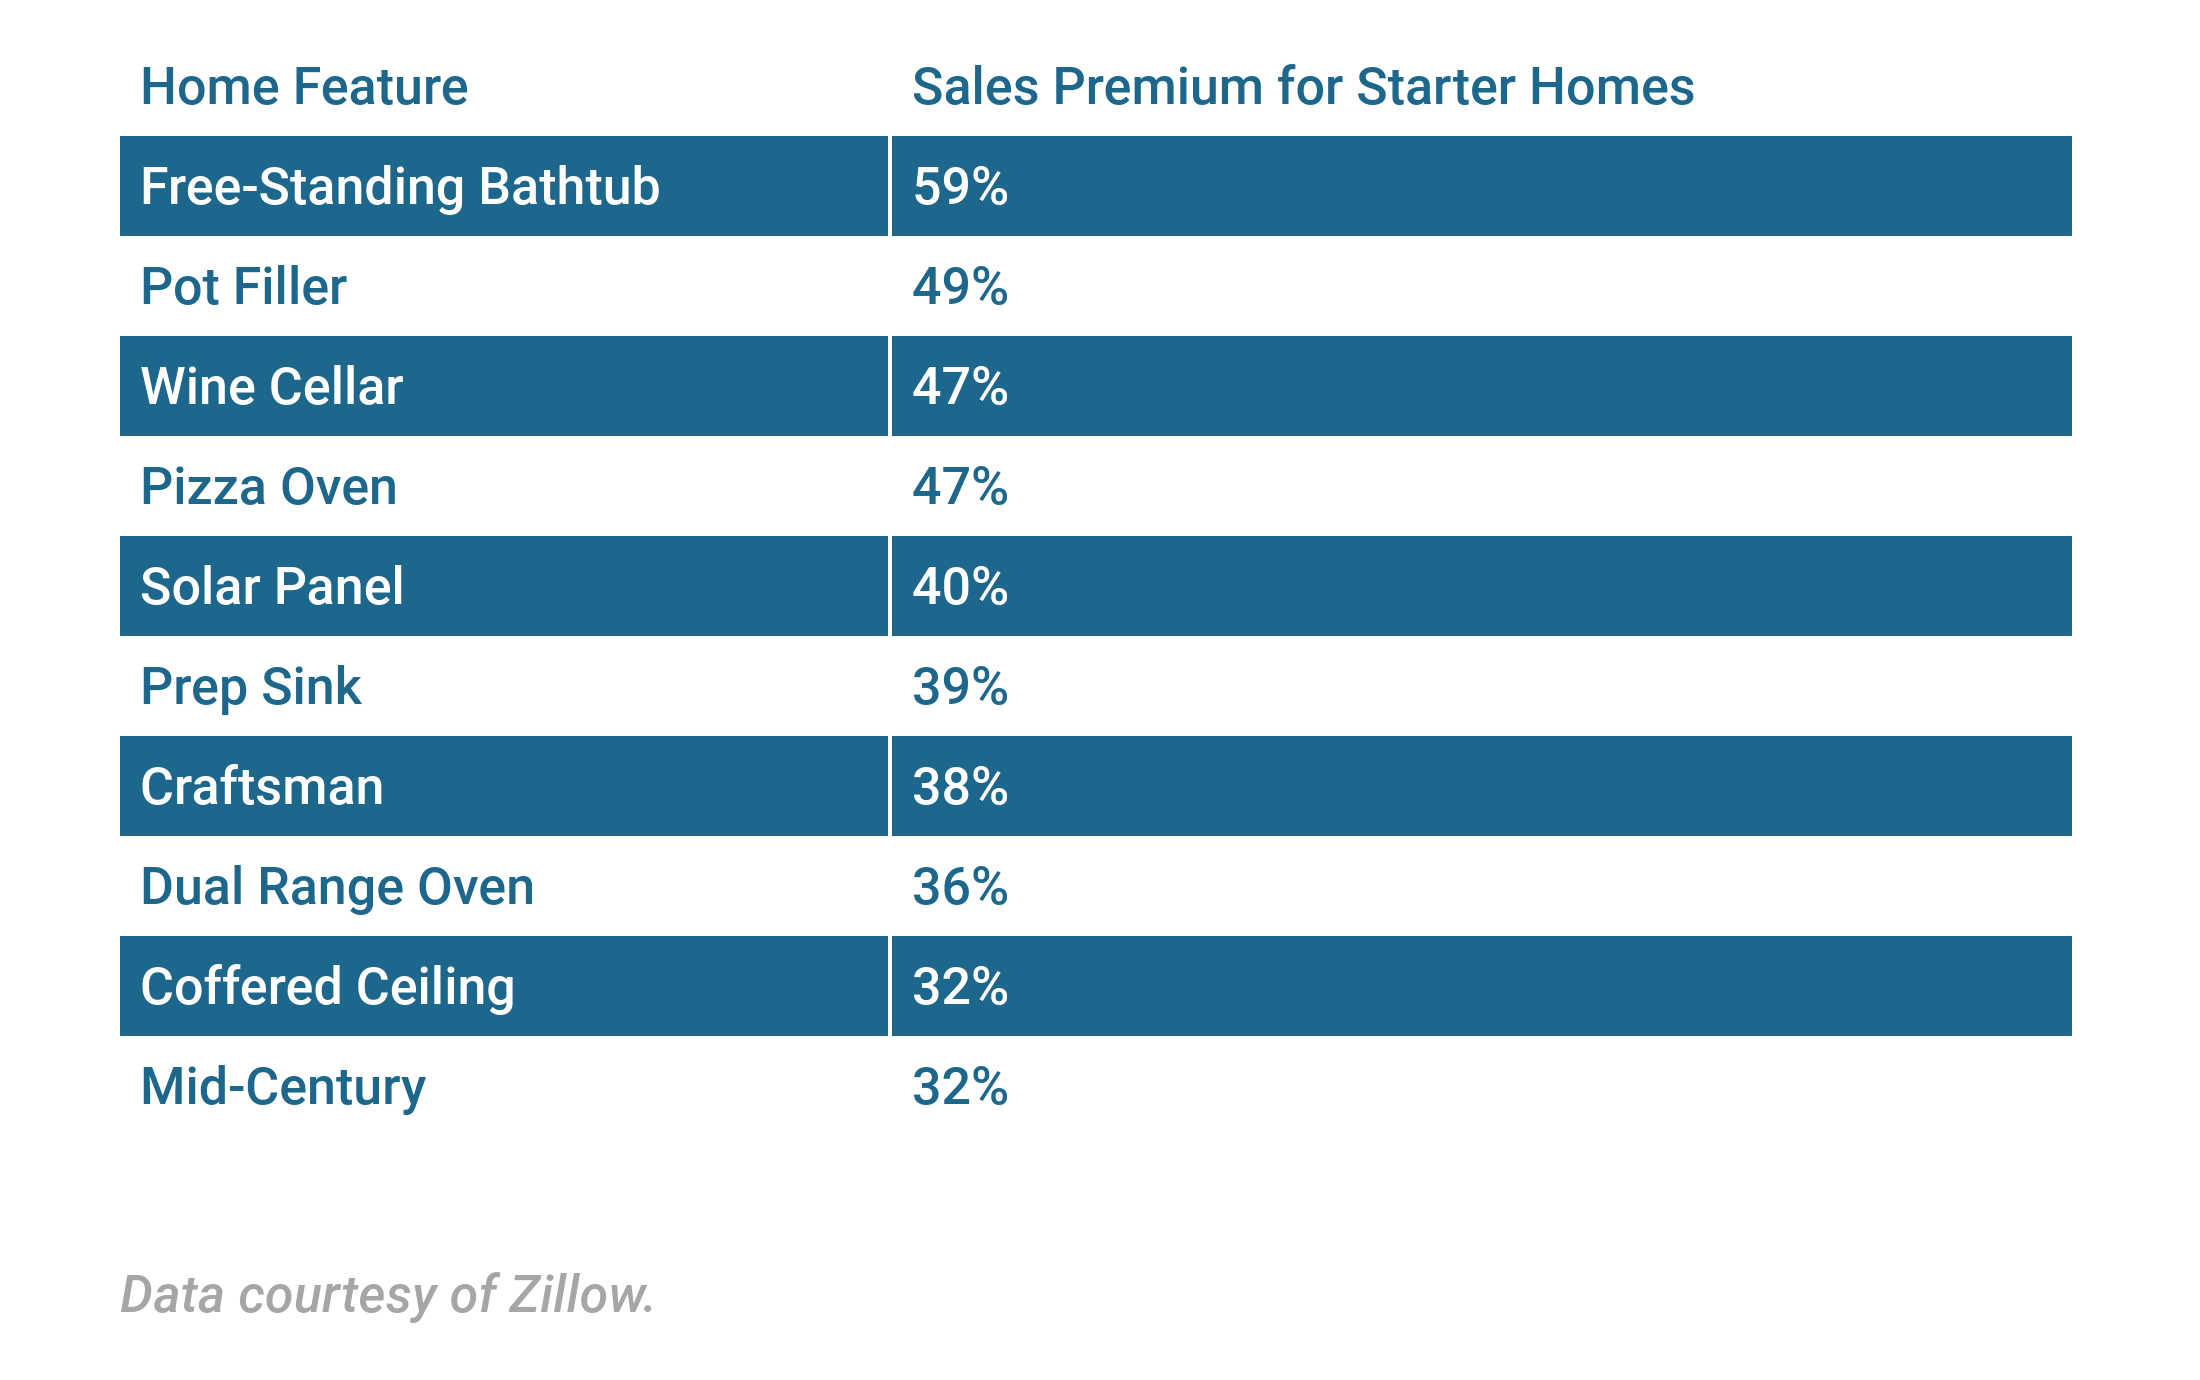 home-feature-and-sales-premium-starter-homes.png